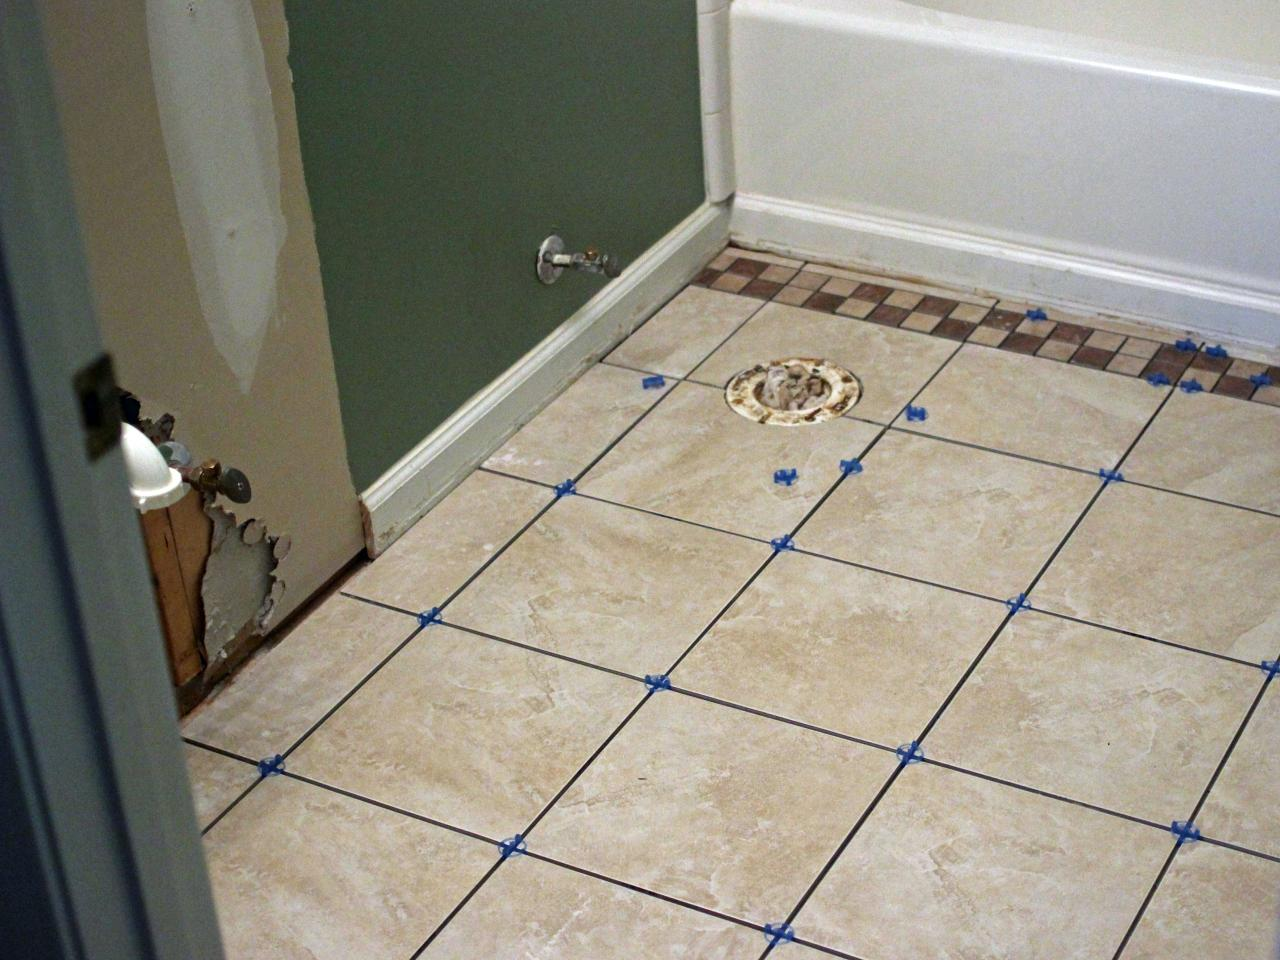 Floor Tiles Lifting In Bathroom : How to install bathroom floor tile tos diy